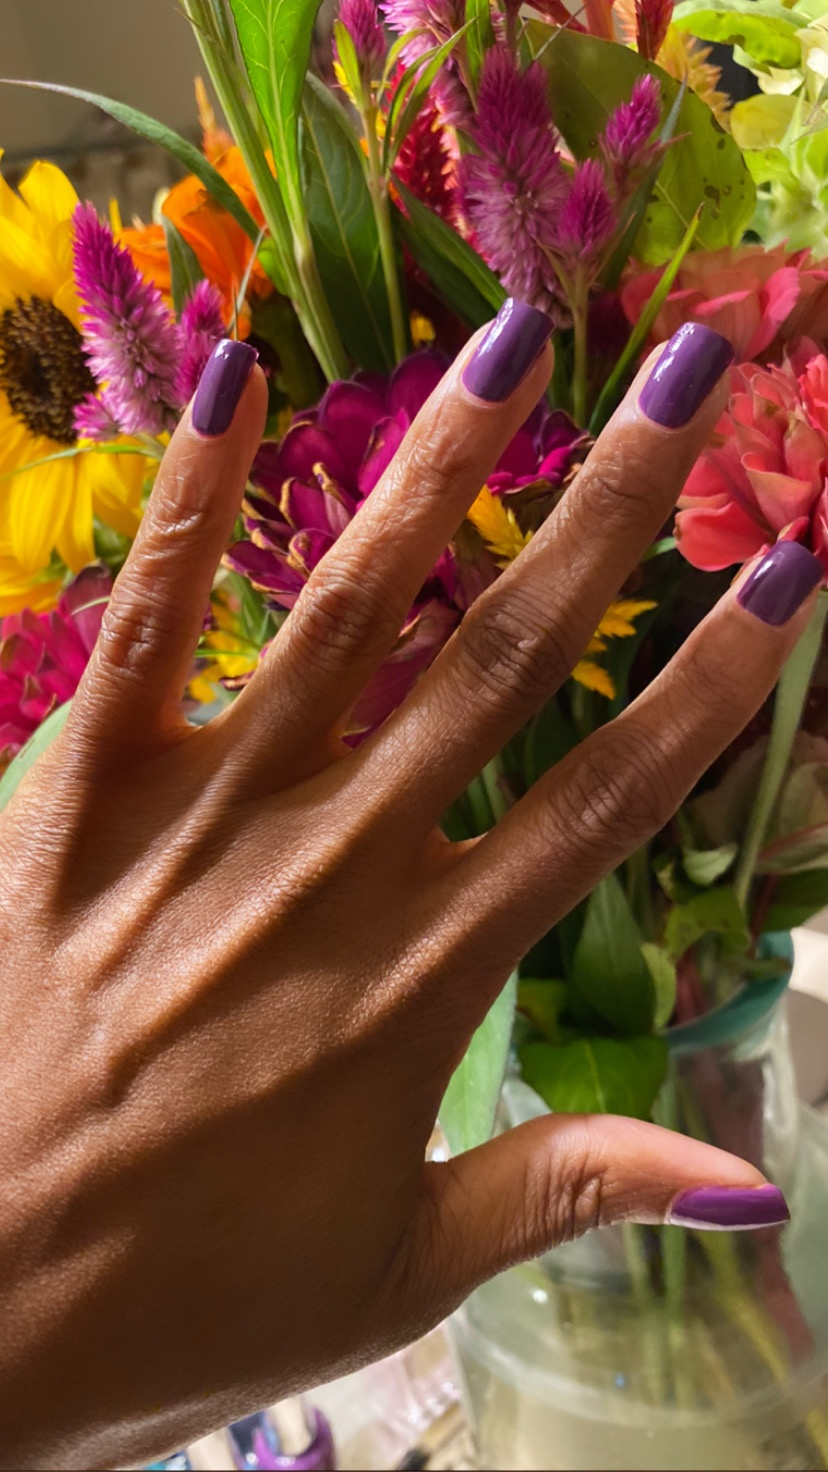 Get The Look: OPI's 'Violet Visionary' Polish From The Downtown L.A. Fall Collection